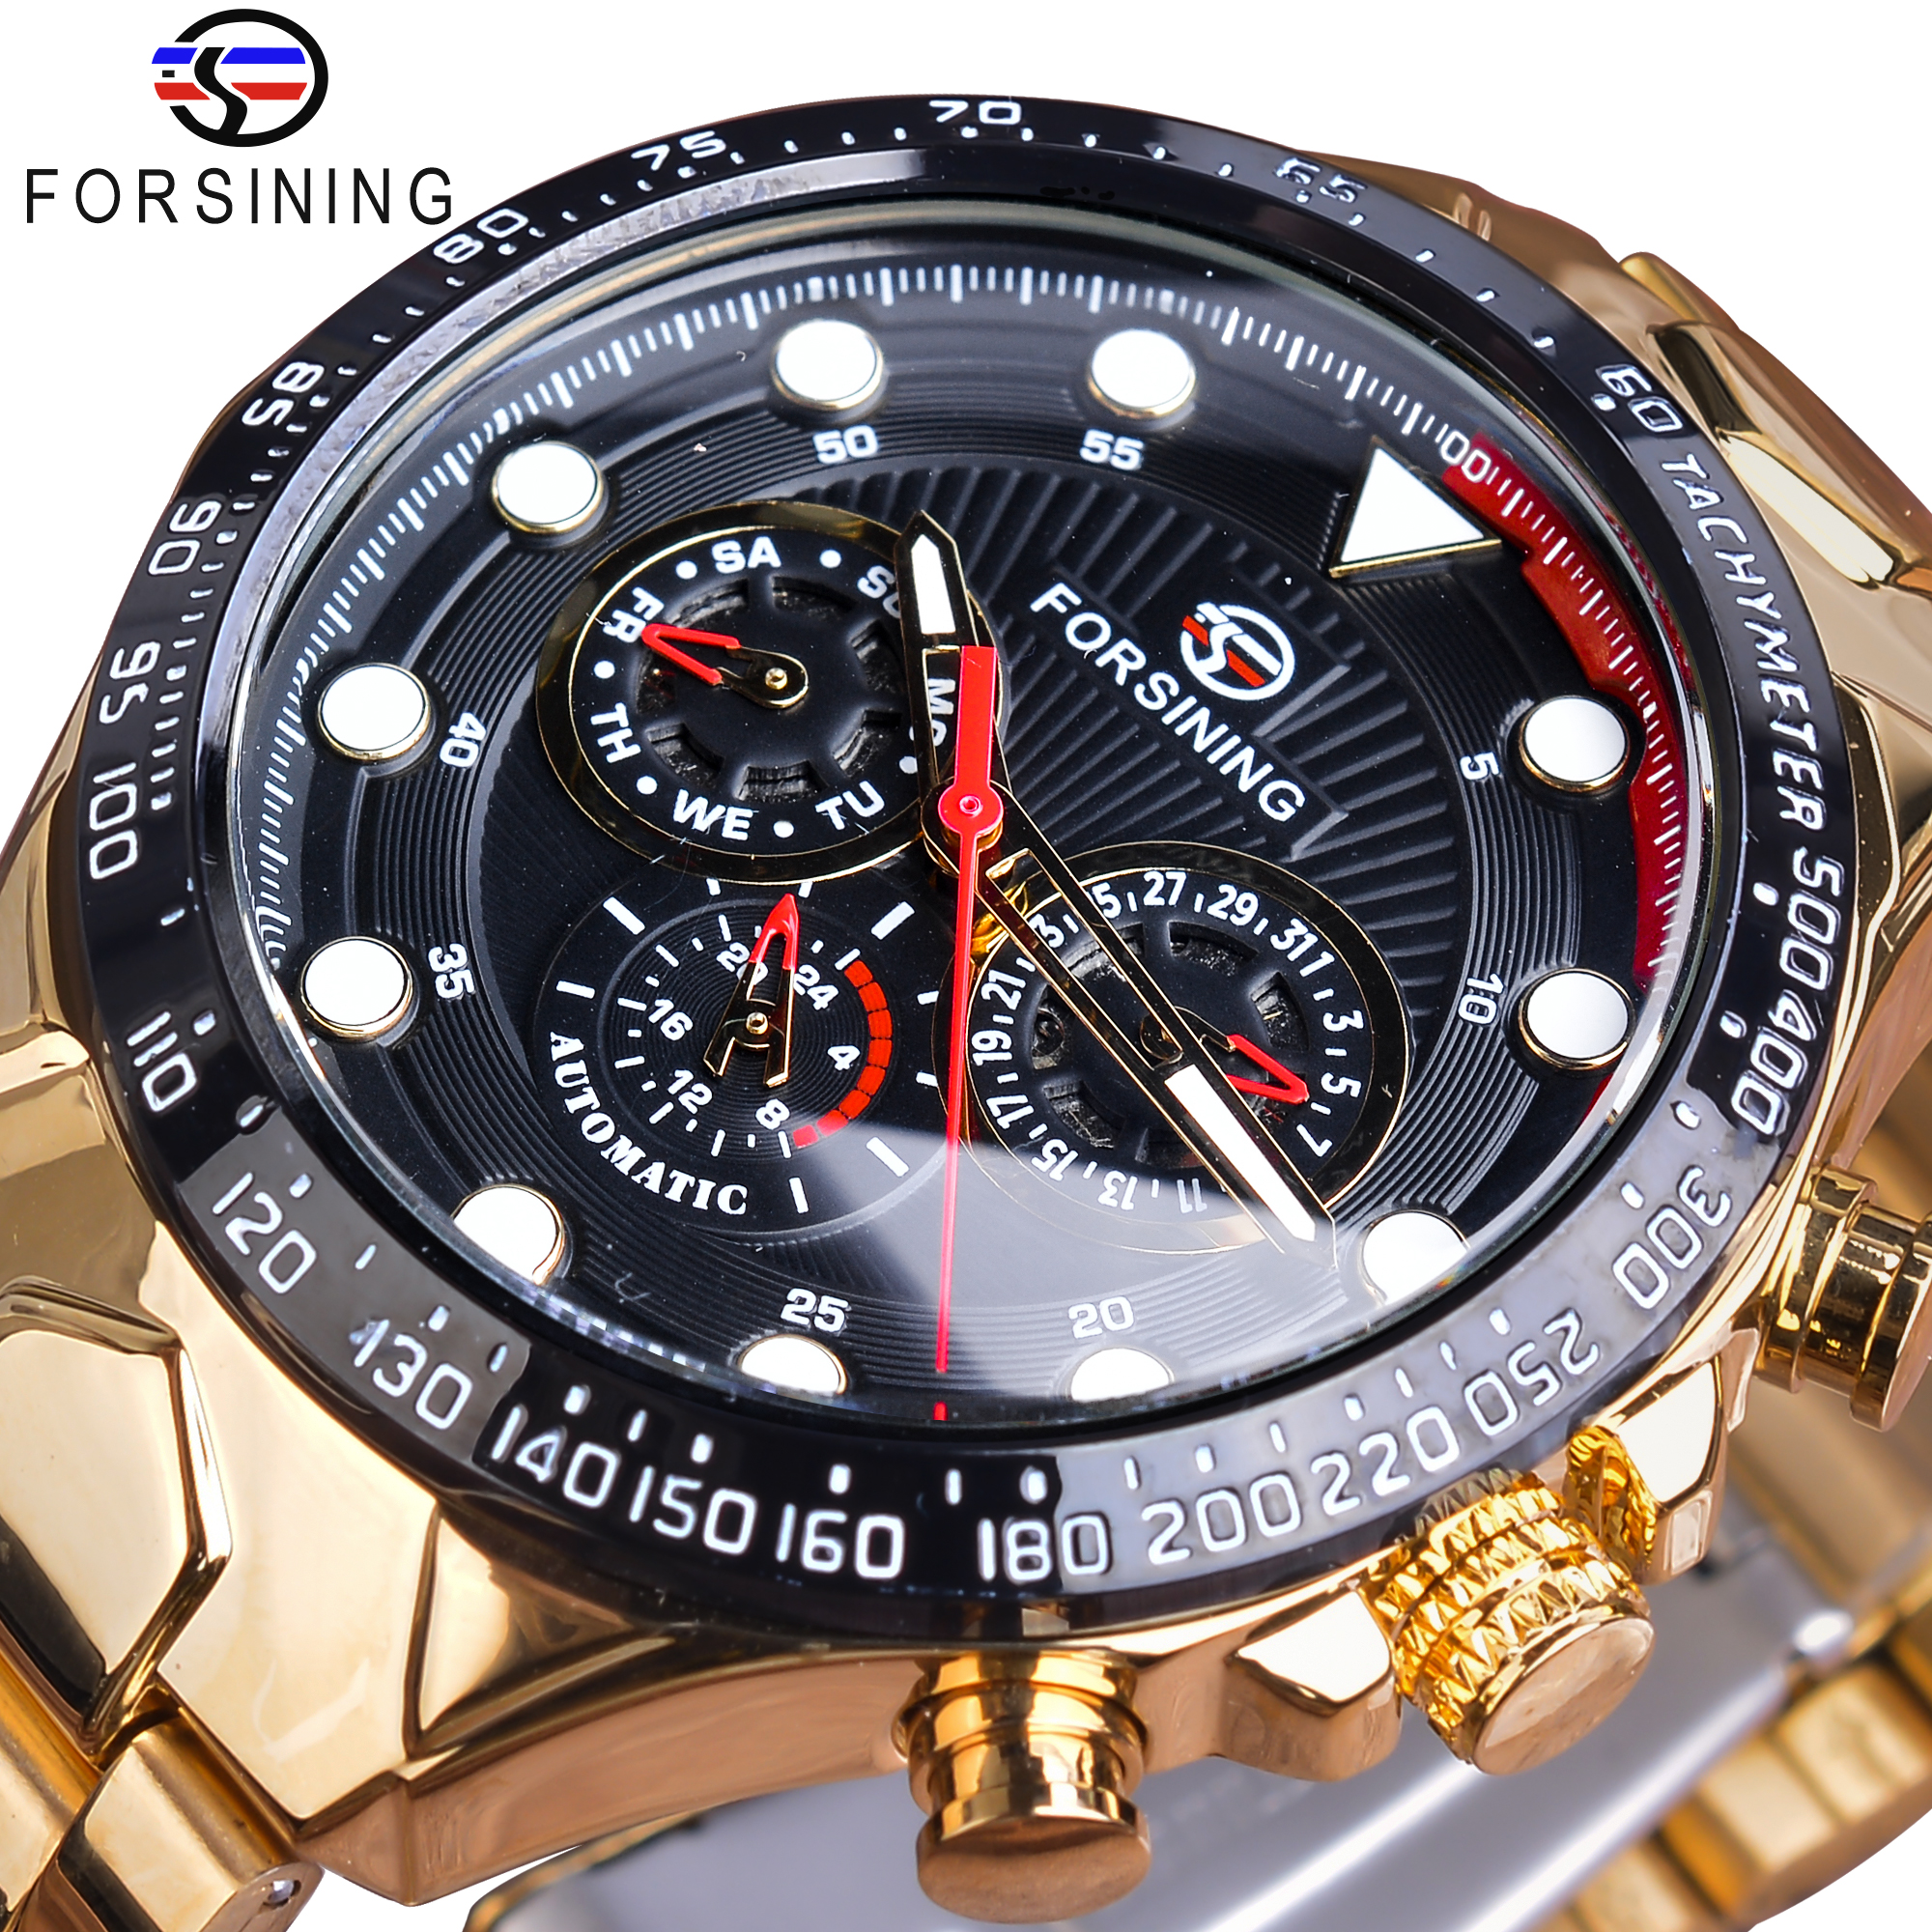 Forsining Automatic Self Wind Mechanical Male Watches Golden Steel Strap Calendar Display Classic High Quality Sport Watch ClockForsining Automatic Self Wind Mechanical Male Watches Golden Steel Strap Calendar Display Classic High Quality Sport Watch Clock